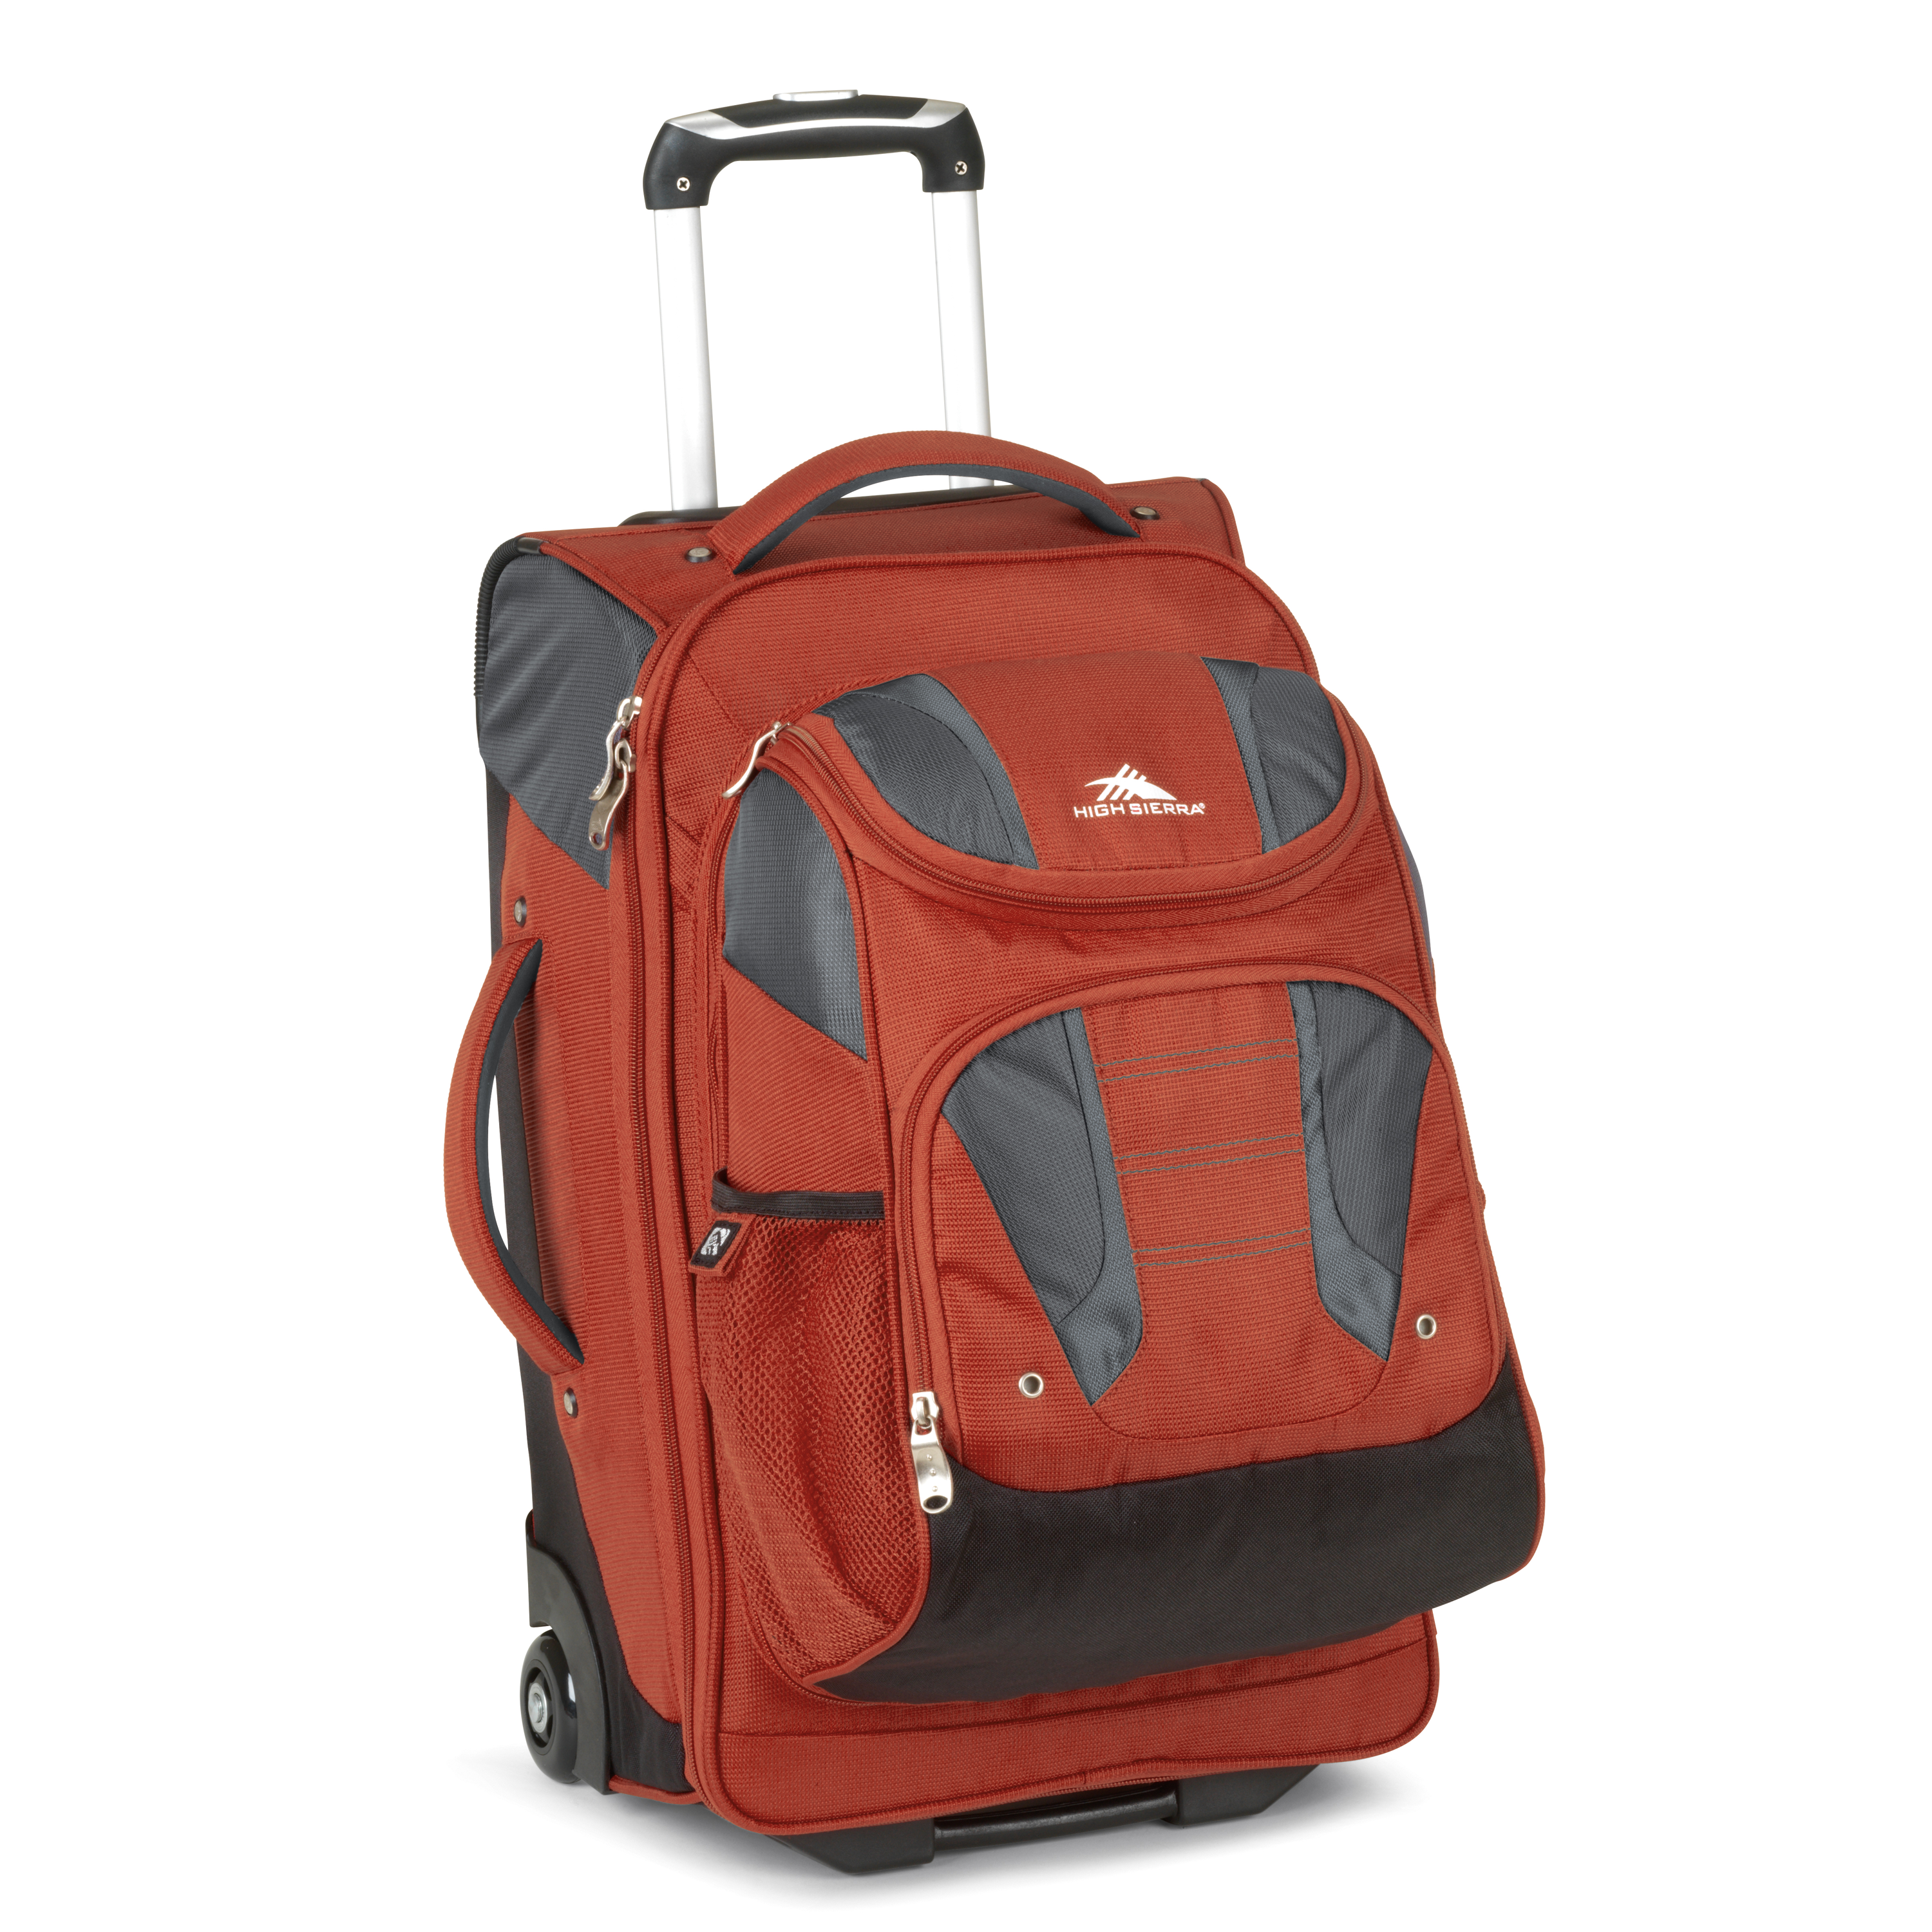 High Sierra Prime Access Carry On Wheeled Backpack | eBay